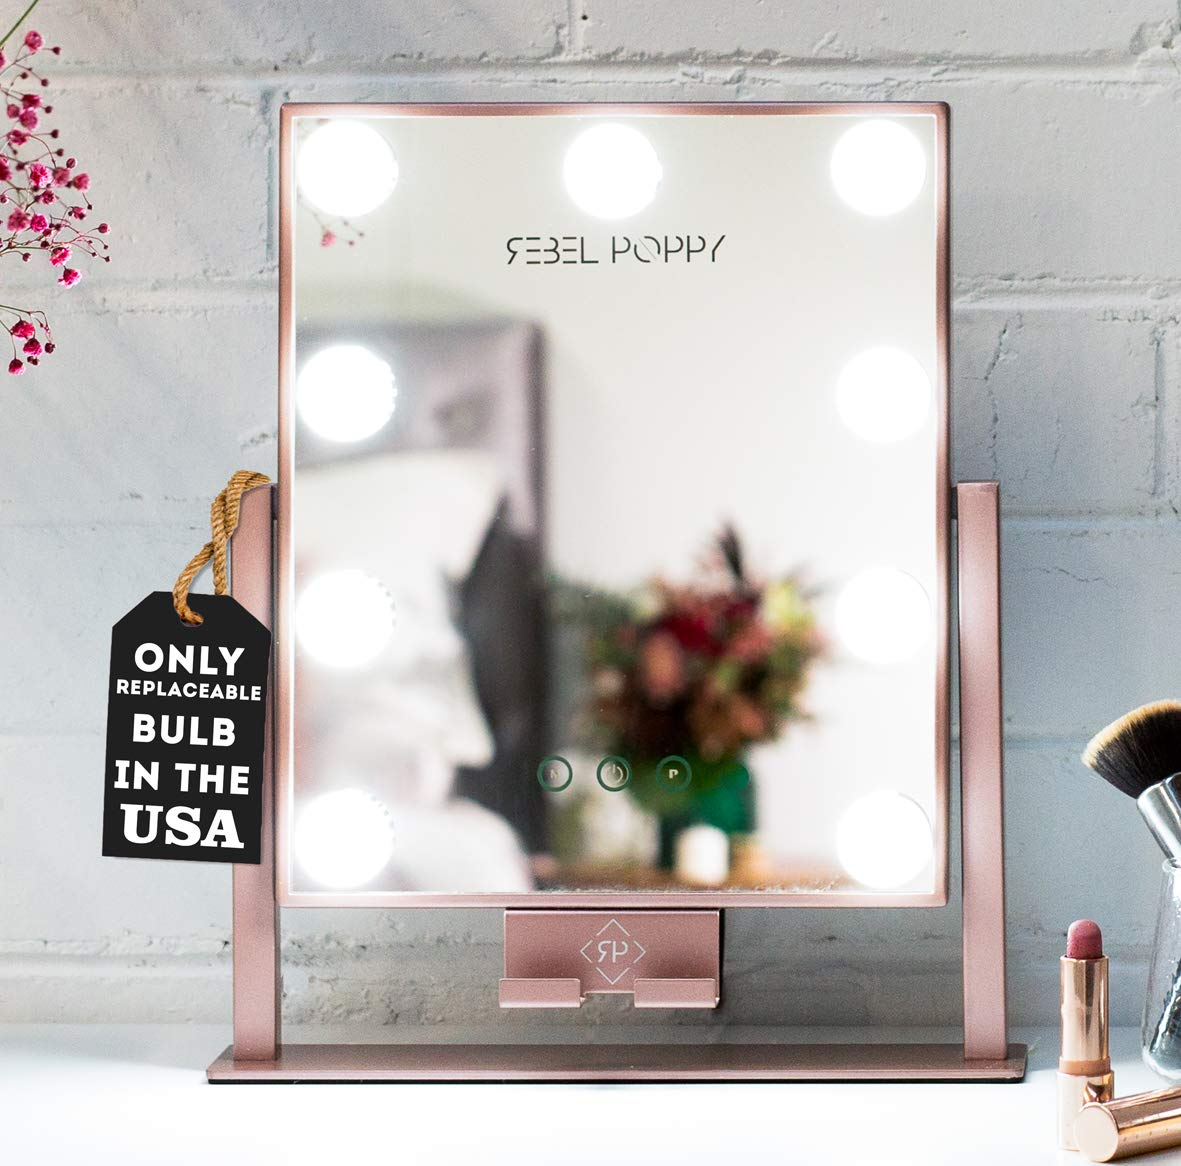 Rebel Poppy Lighted Vanity Makeup Mirror with LED Lights and Phone Mount, 3 Lighting Touch Control, 14.5 x 12 - Counter Top Mirrors - Mini Rose Gold